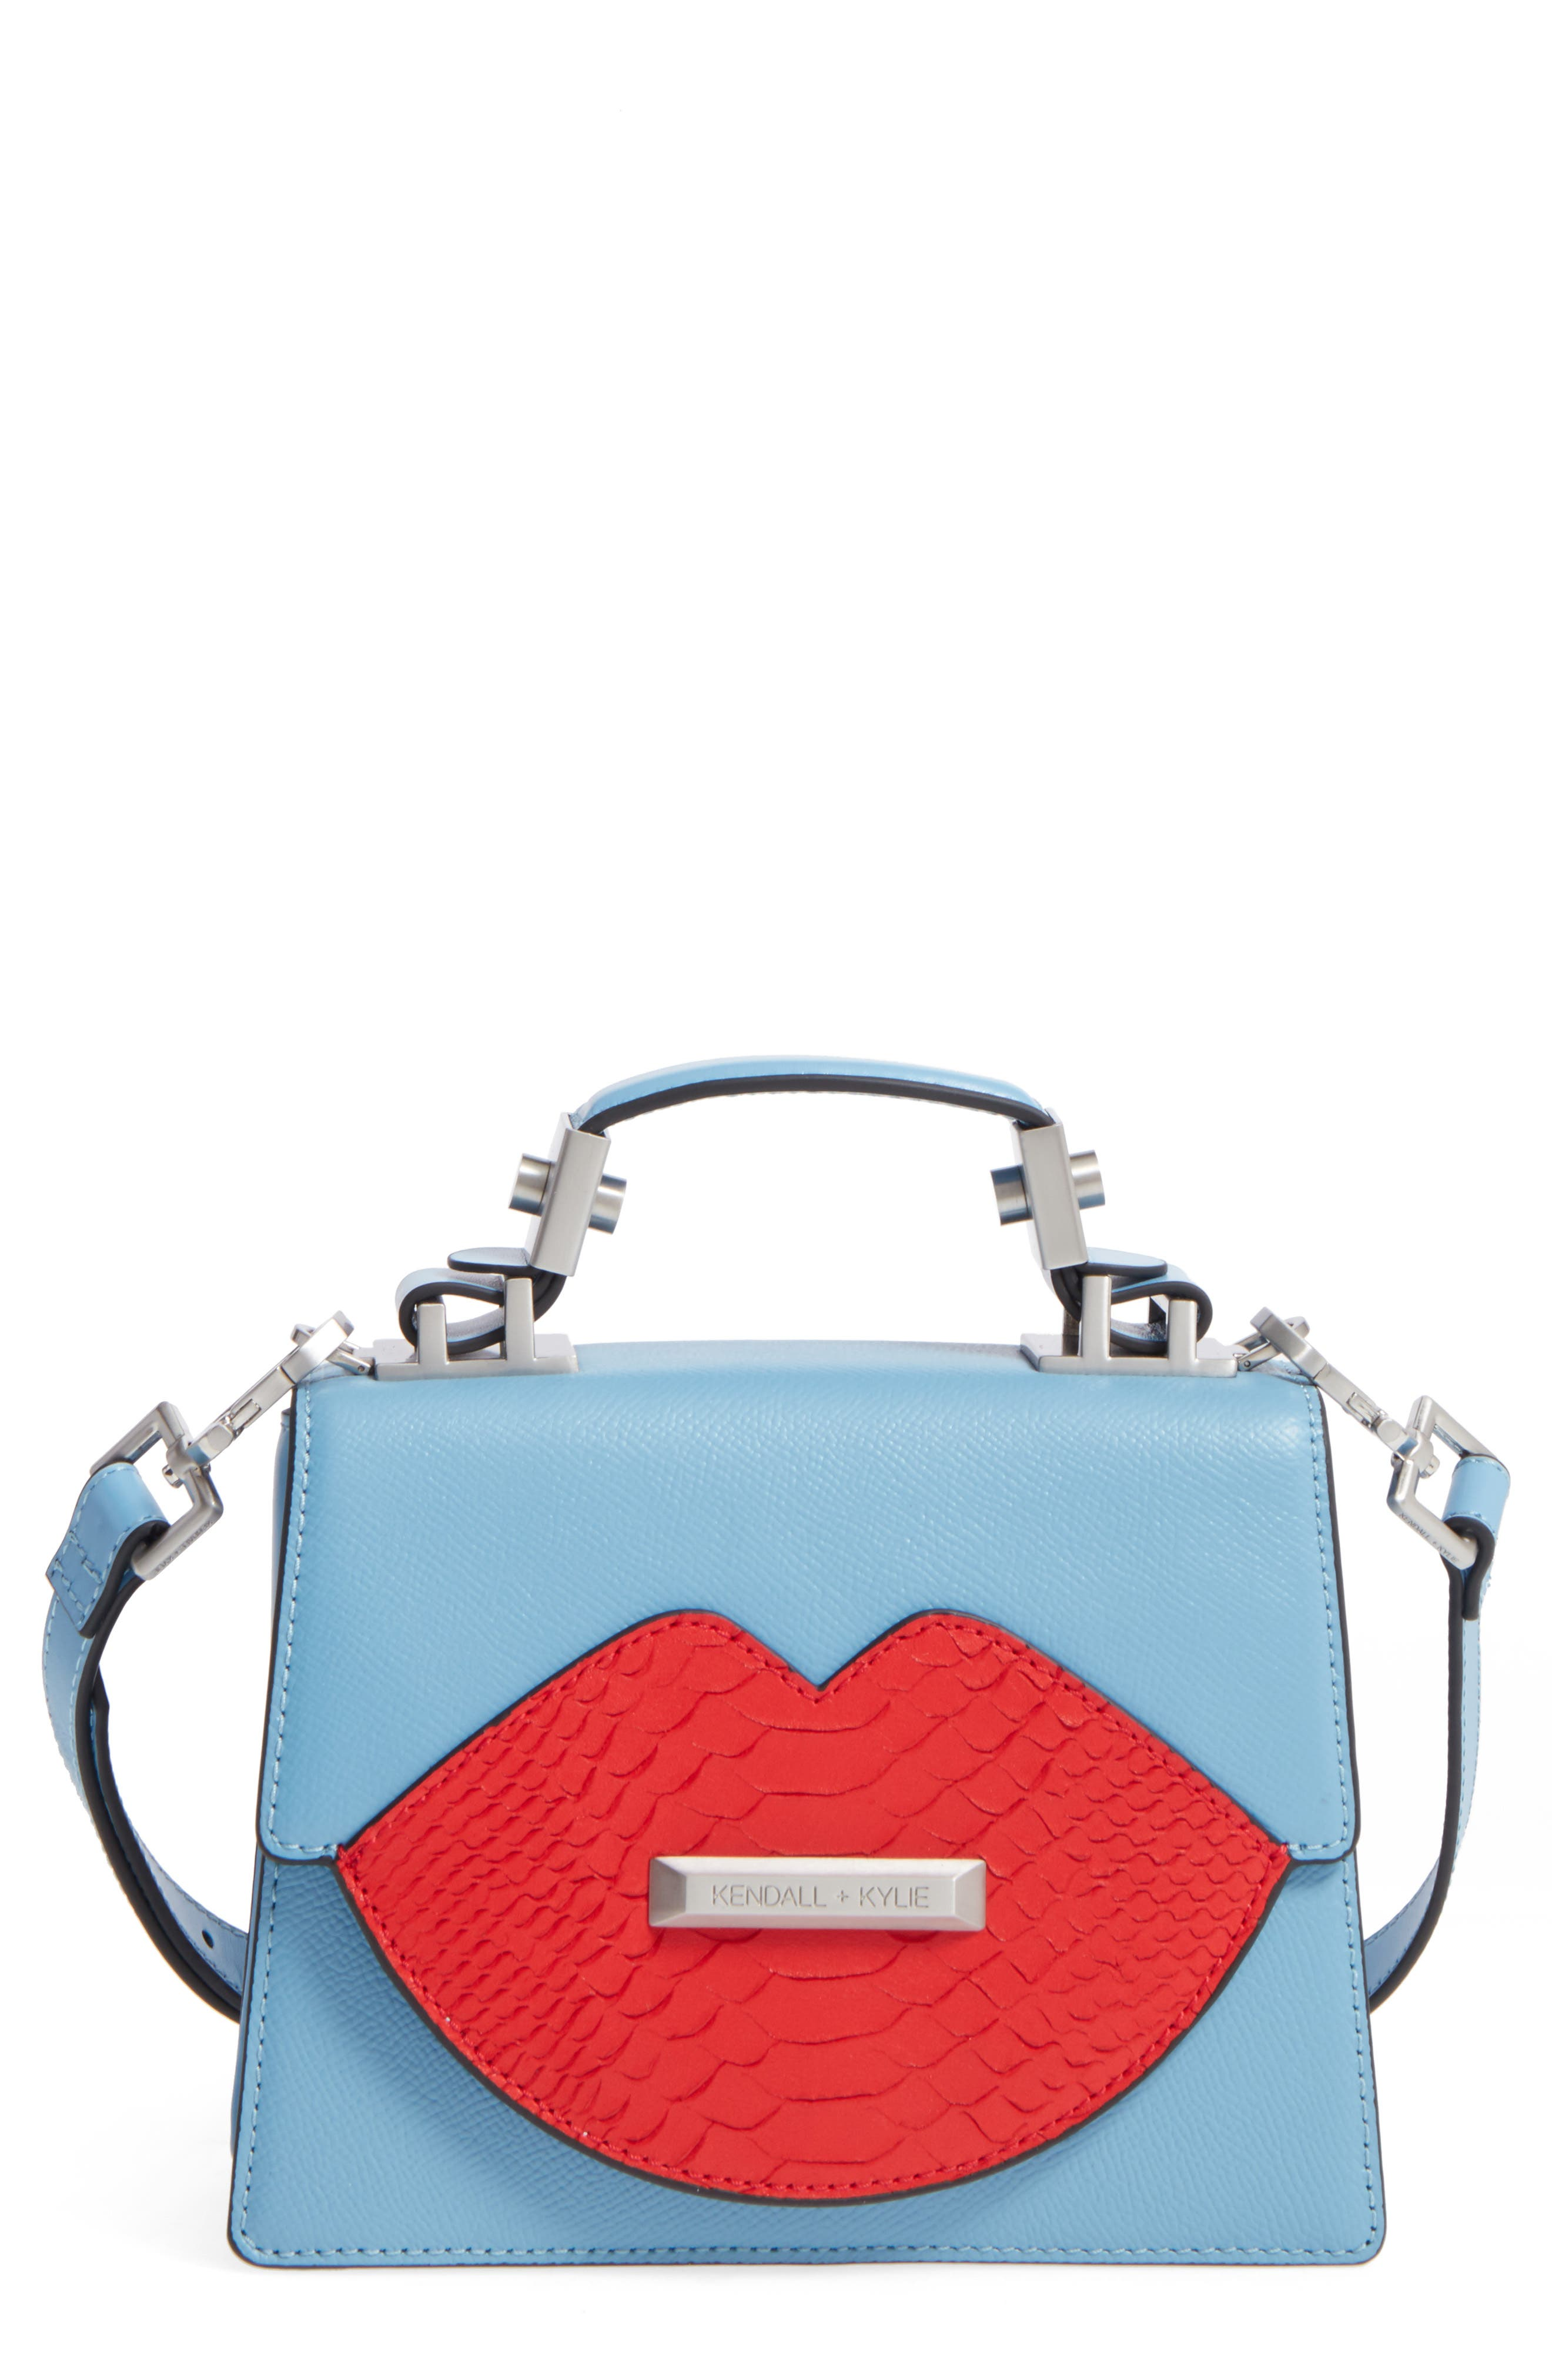 Alternate Image 1 Selected - KENDALL + KYLIE Lips Leather Top Handle Satchel